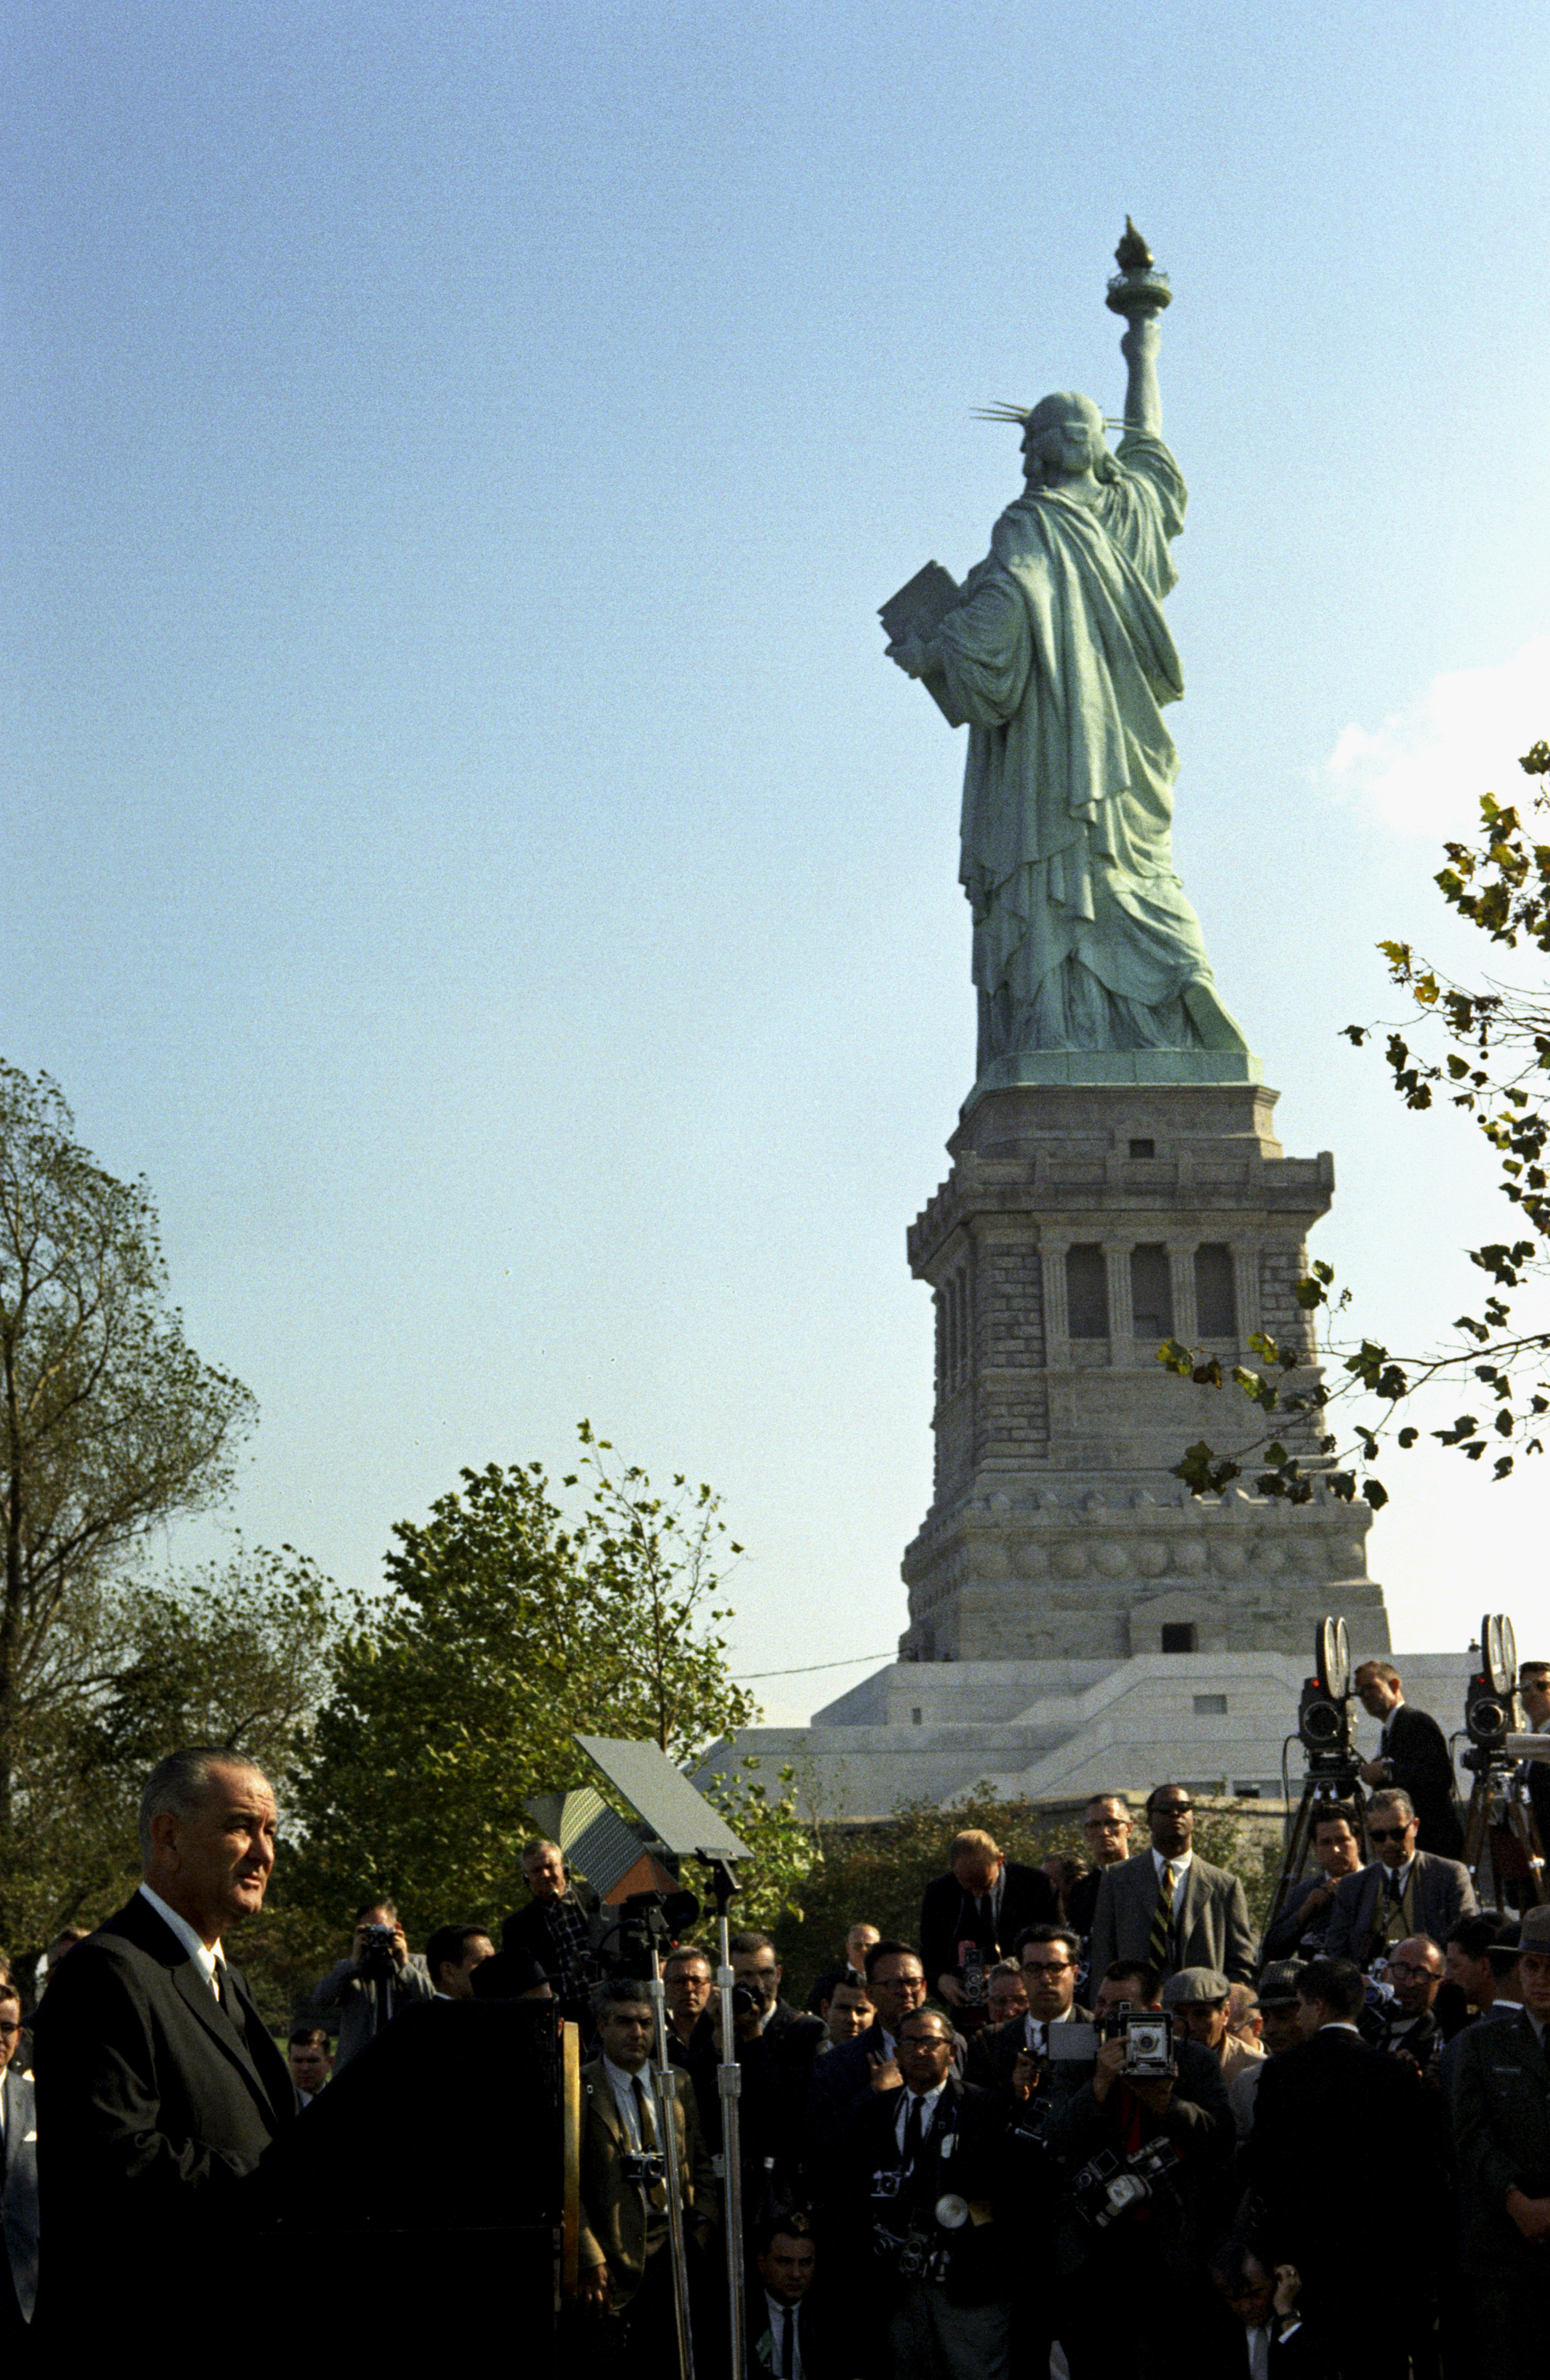 With the Statue of Liberty in the background, President Lyndon B Johnson addresses the crowds before the signing of the Immigration and Nationality Act on Liberty Island in New York, N.Y., on Oct. 3, 1965.